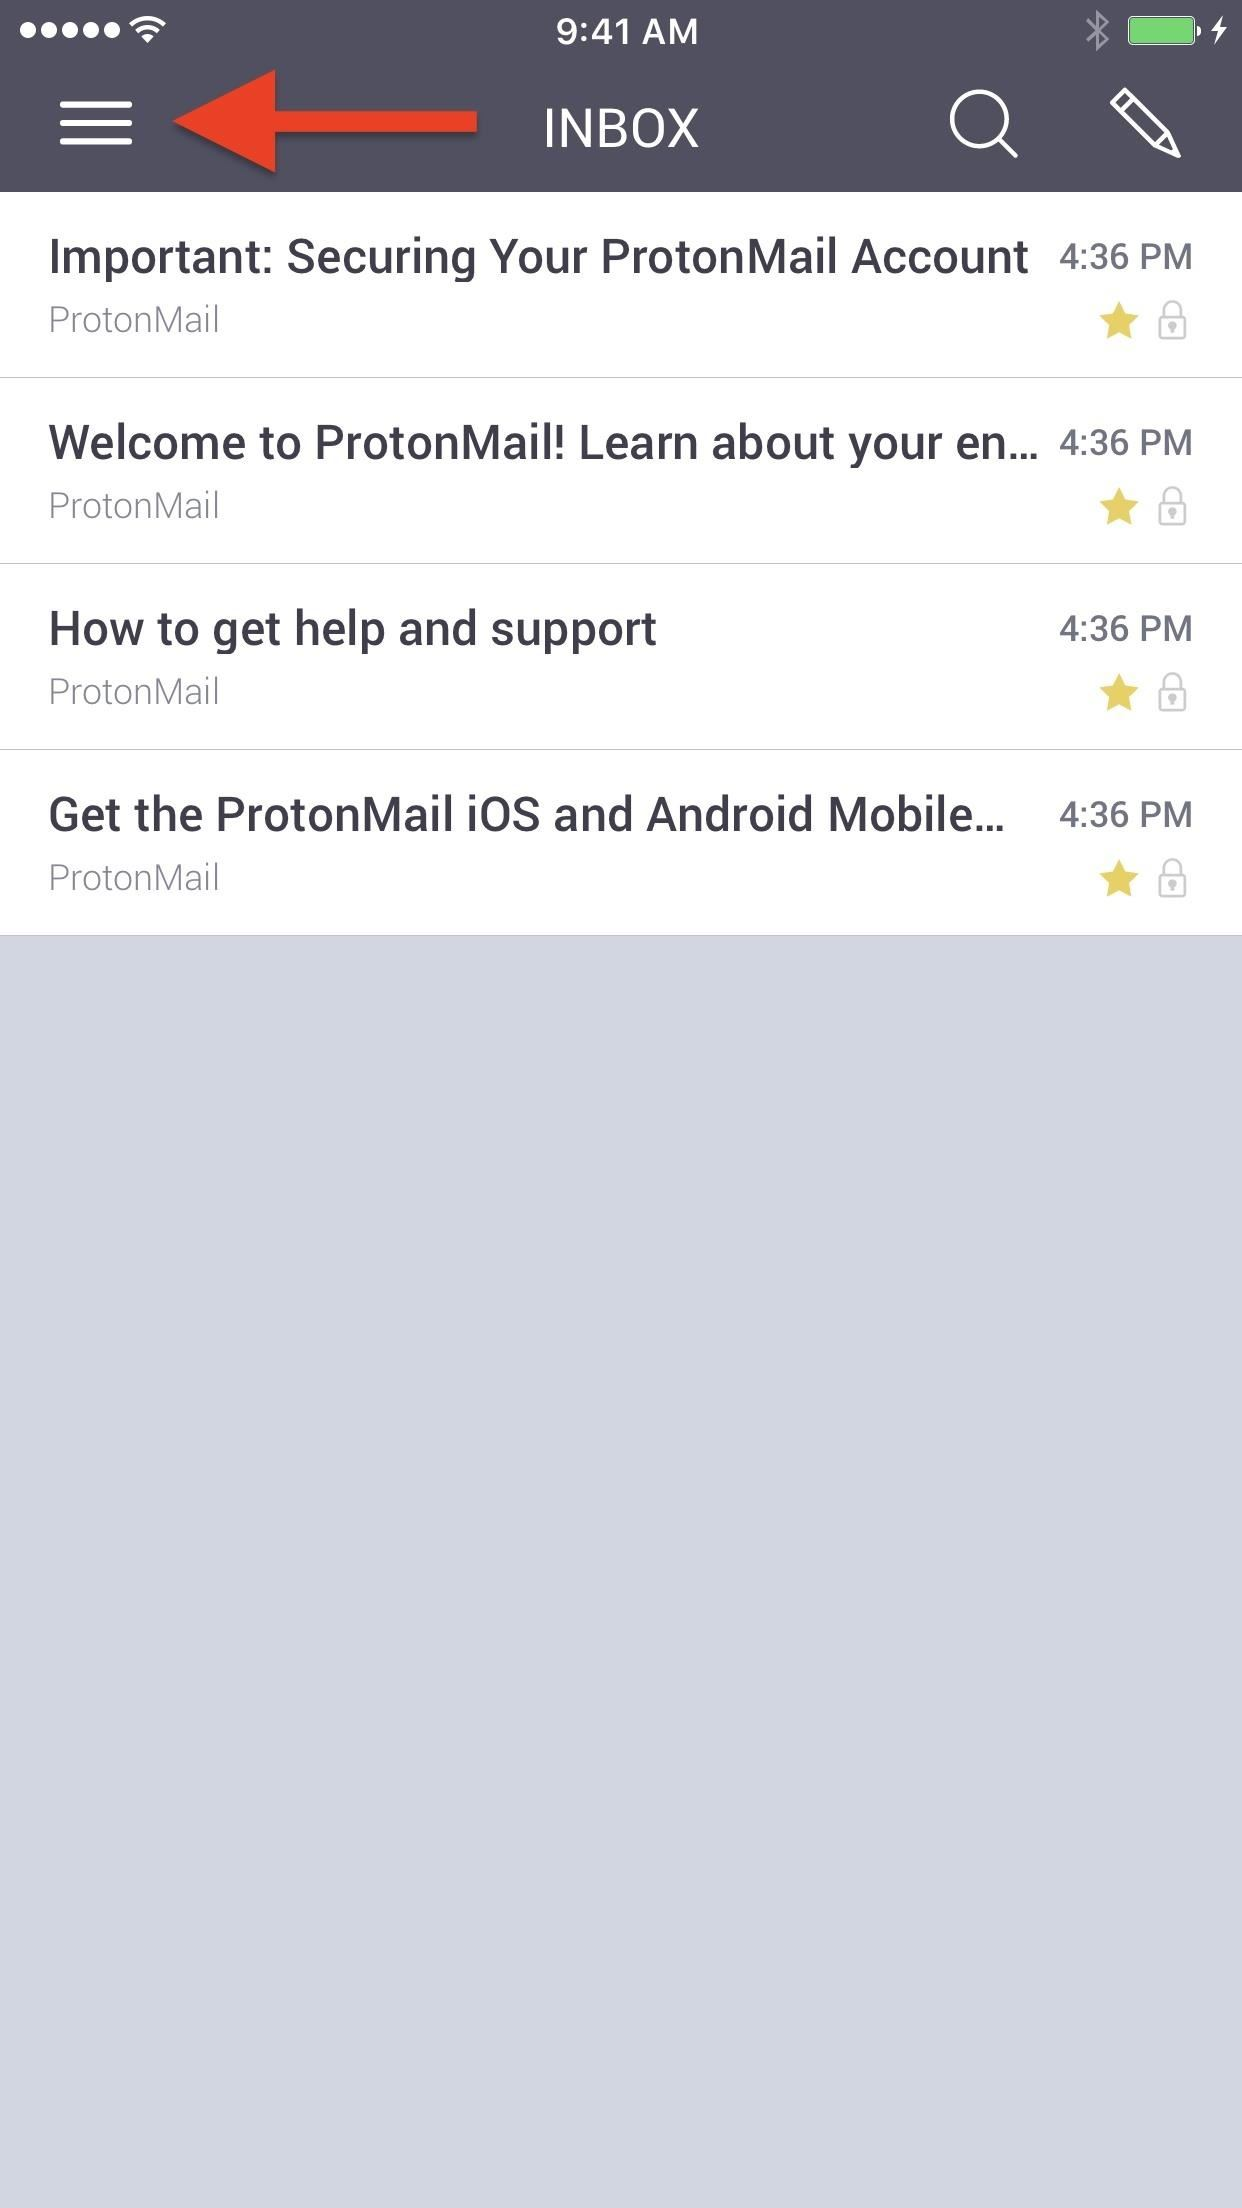 ProtonMail 101: How to Change Your Display Name That Shows Up in Emails